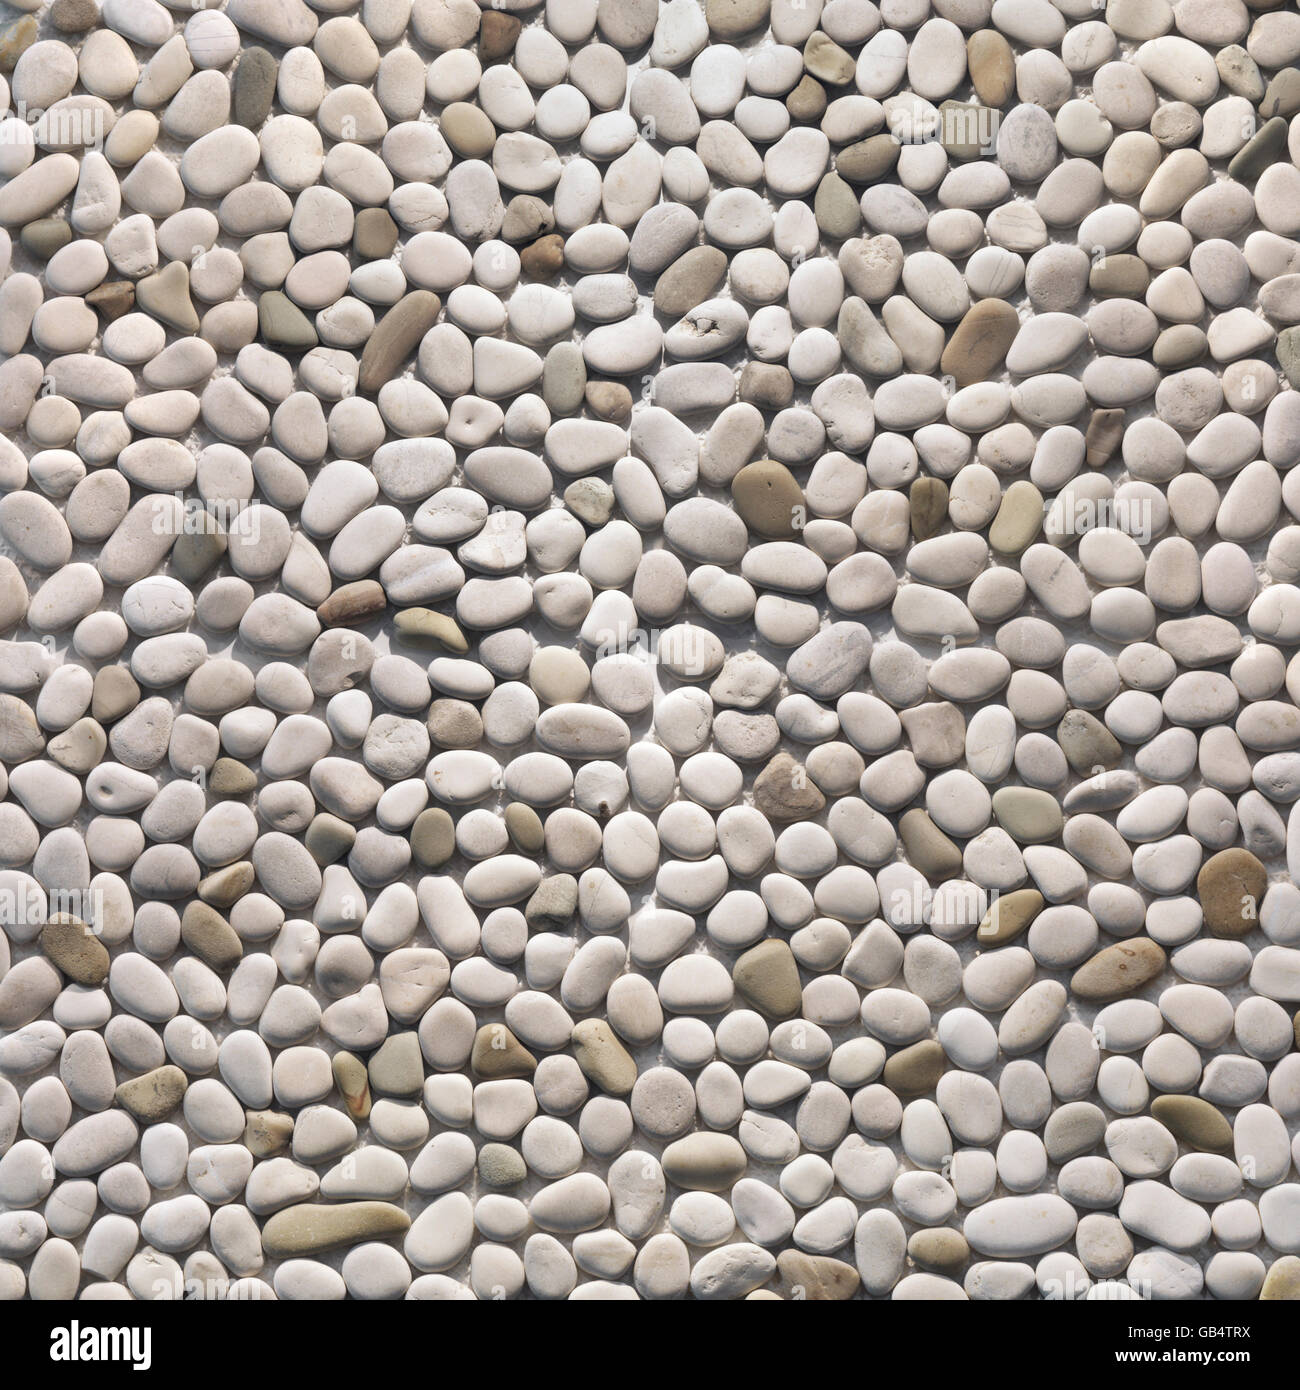 Ivory pebbles, interior and exterior stone finish, texture, background - Stock Image